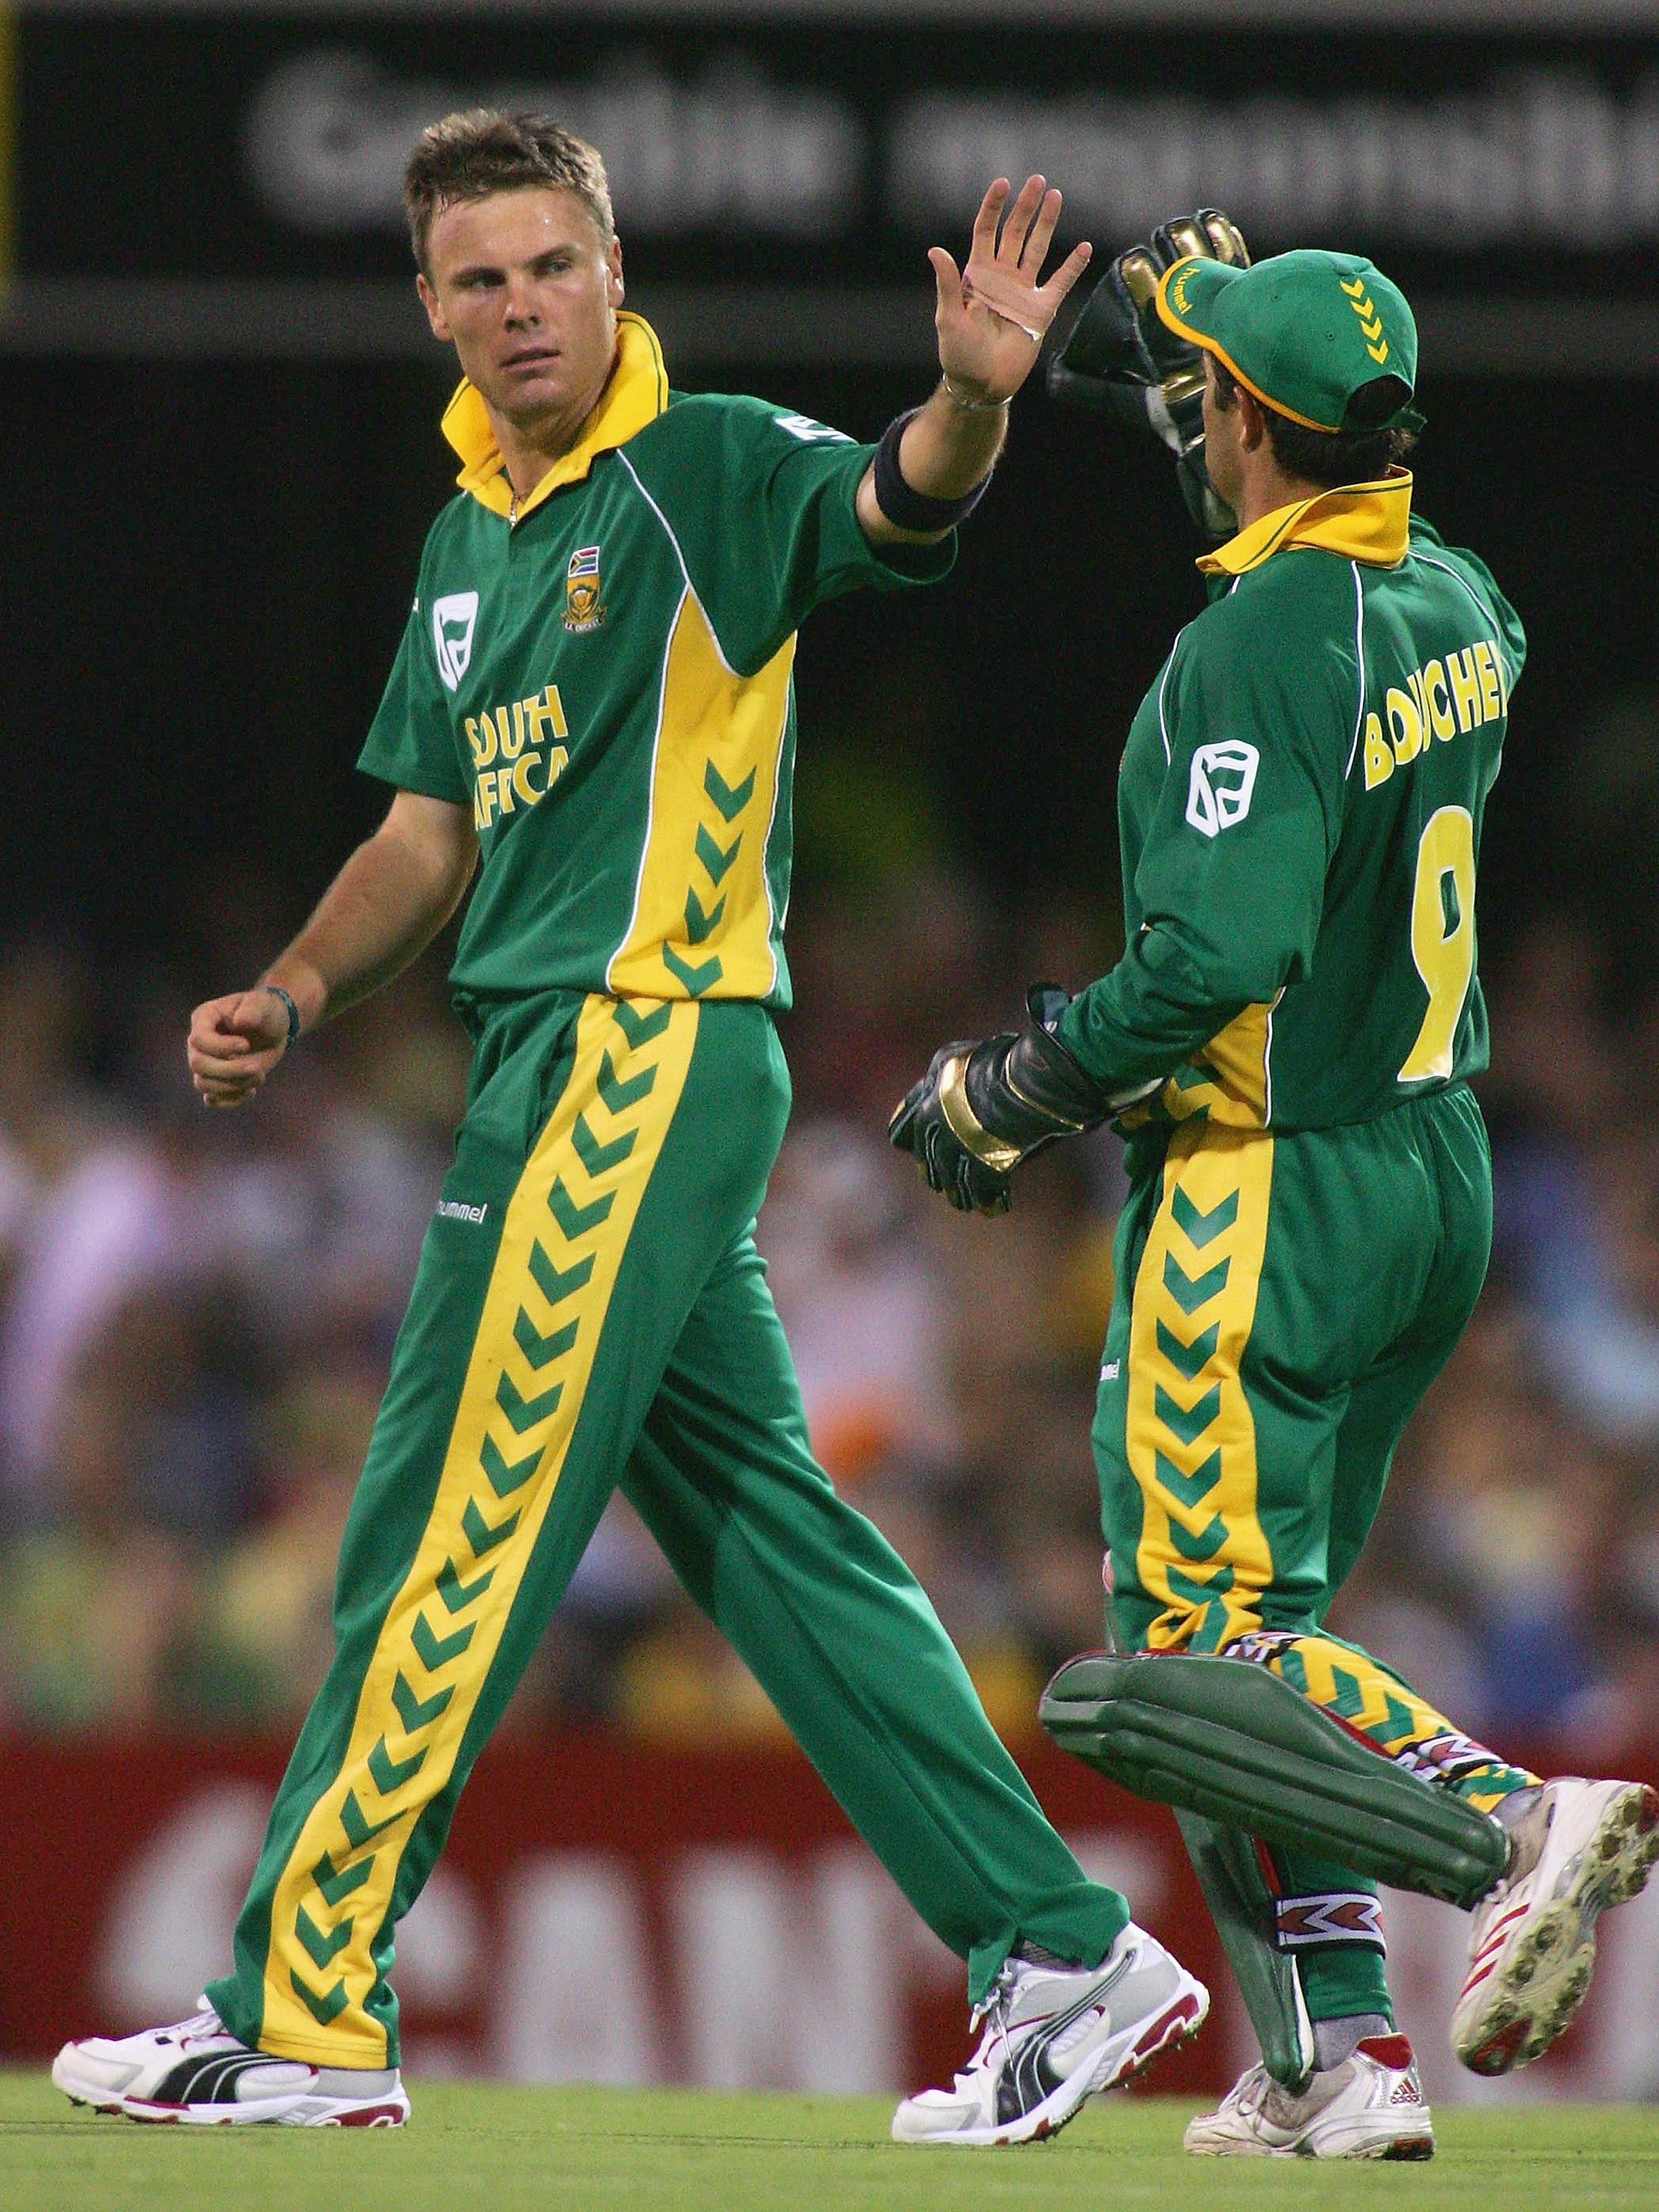 Botha on South Africa's tour of Australia in 2005-06 // Getty